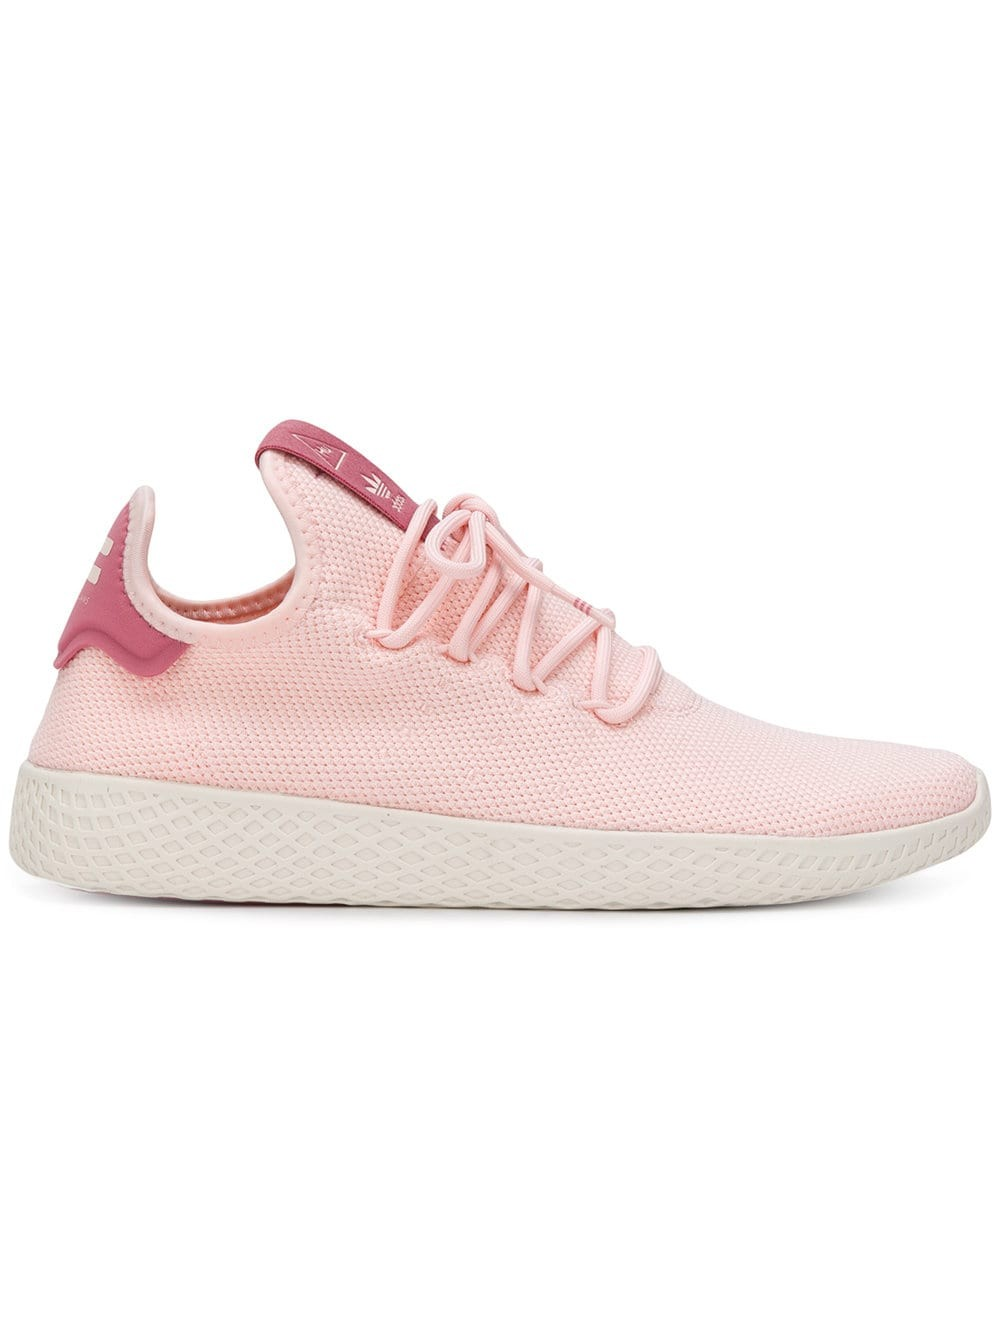 Adidas Pharrell Williams x Femme Tennis Hu 'Rose' AQ0988